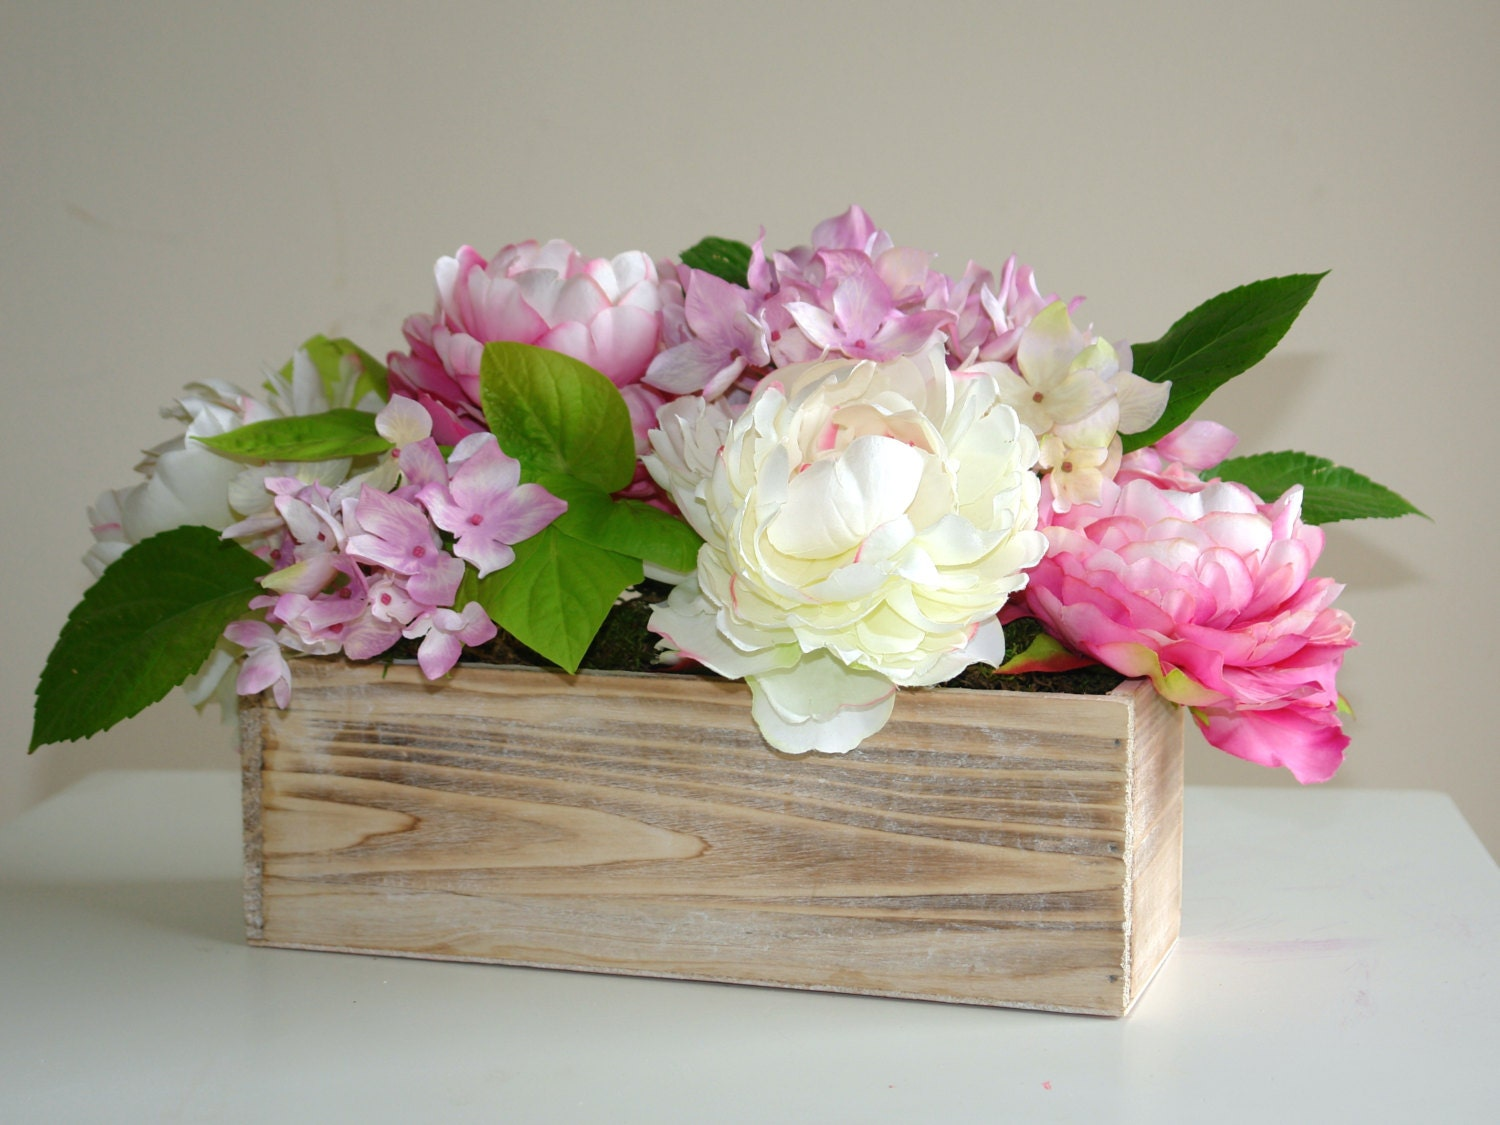 wood box rectangular boxes weddings table decor centerpieces